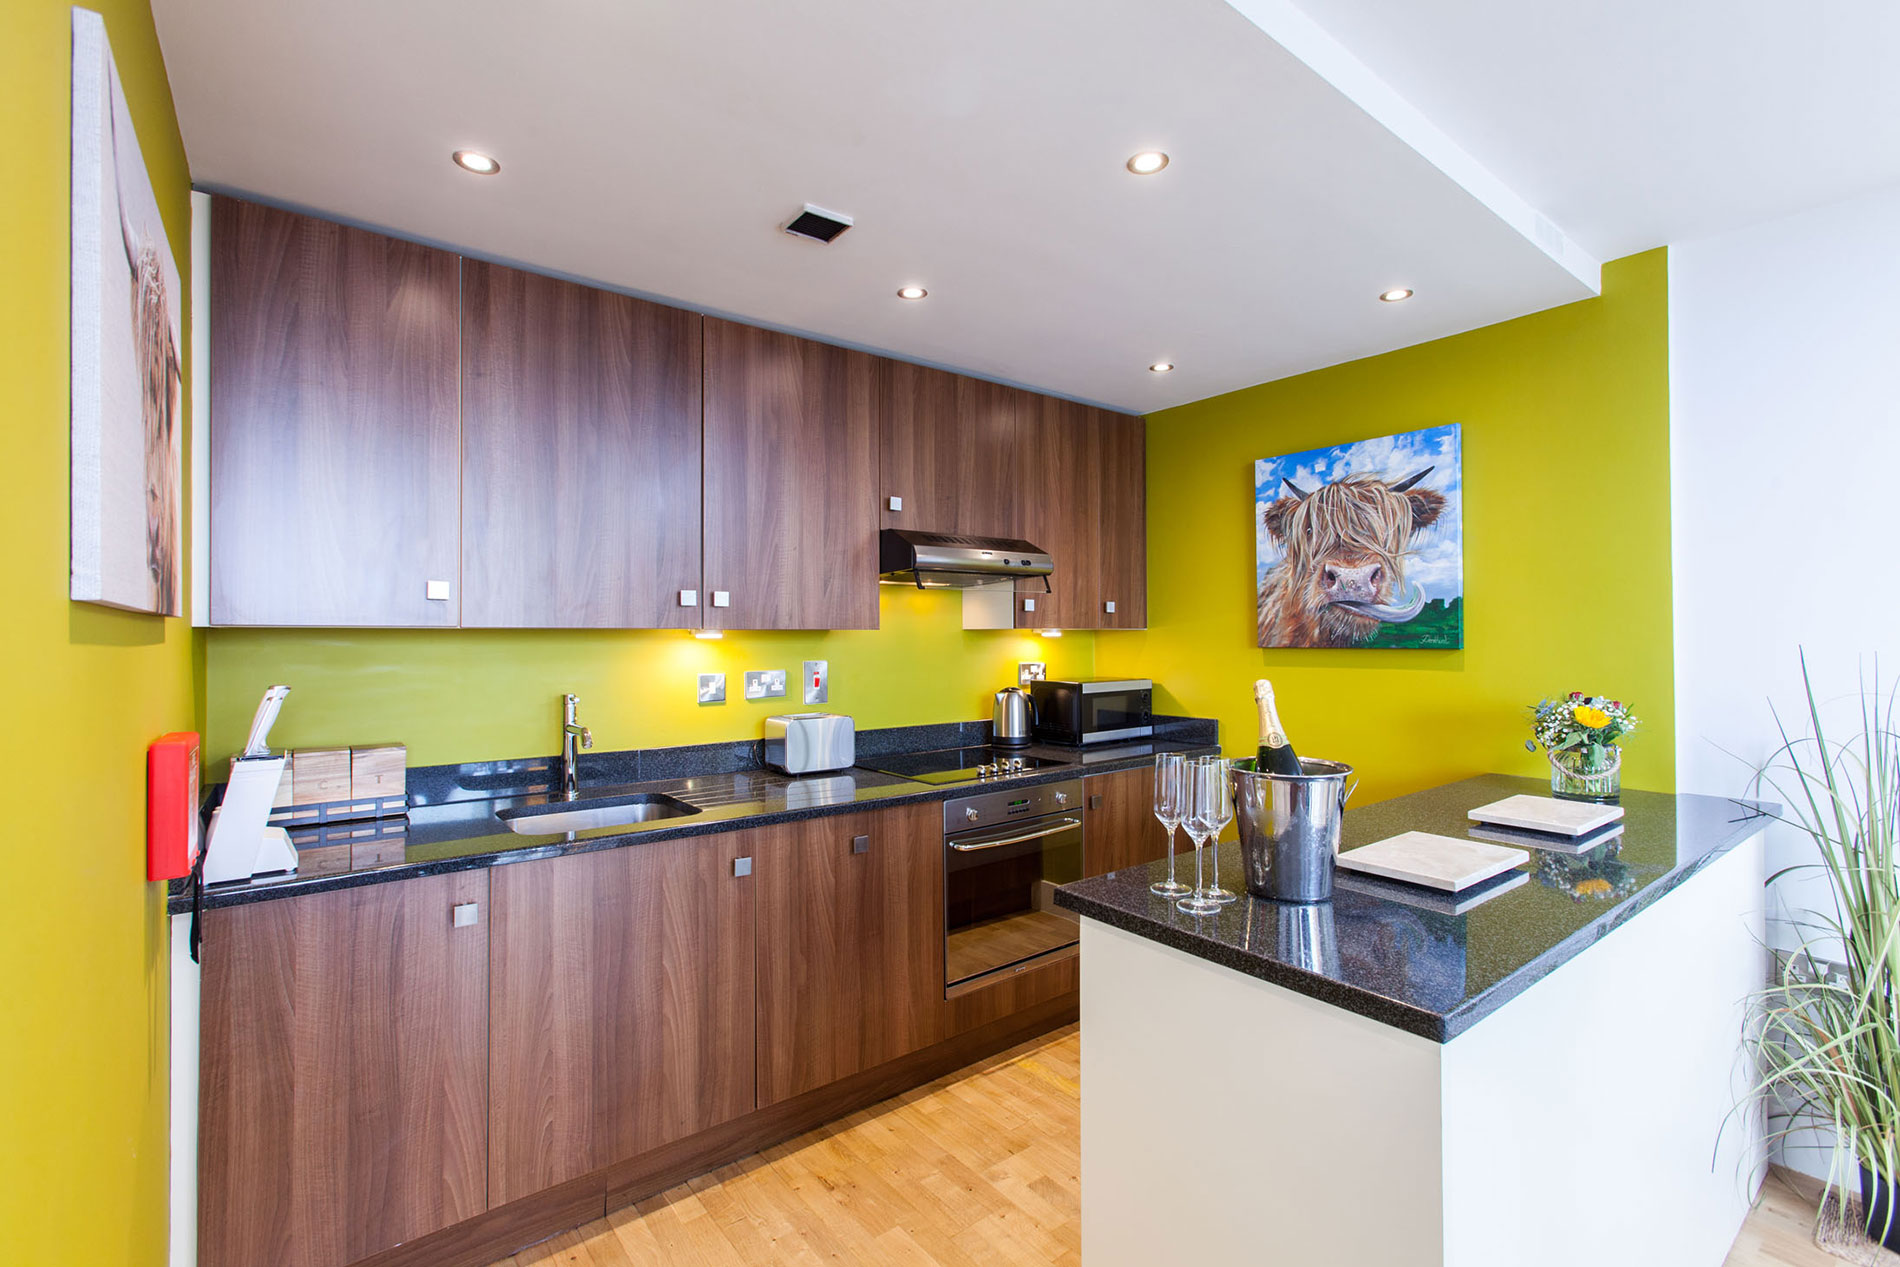 Wooden kitchen at Sinclair Apartments, Centre, Sheffield - Citybase Apartments